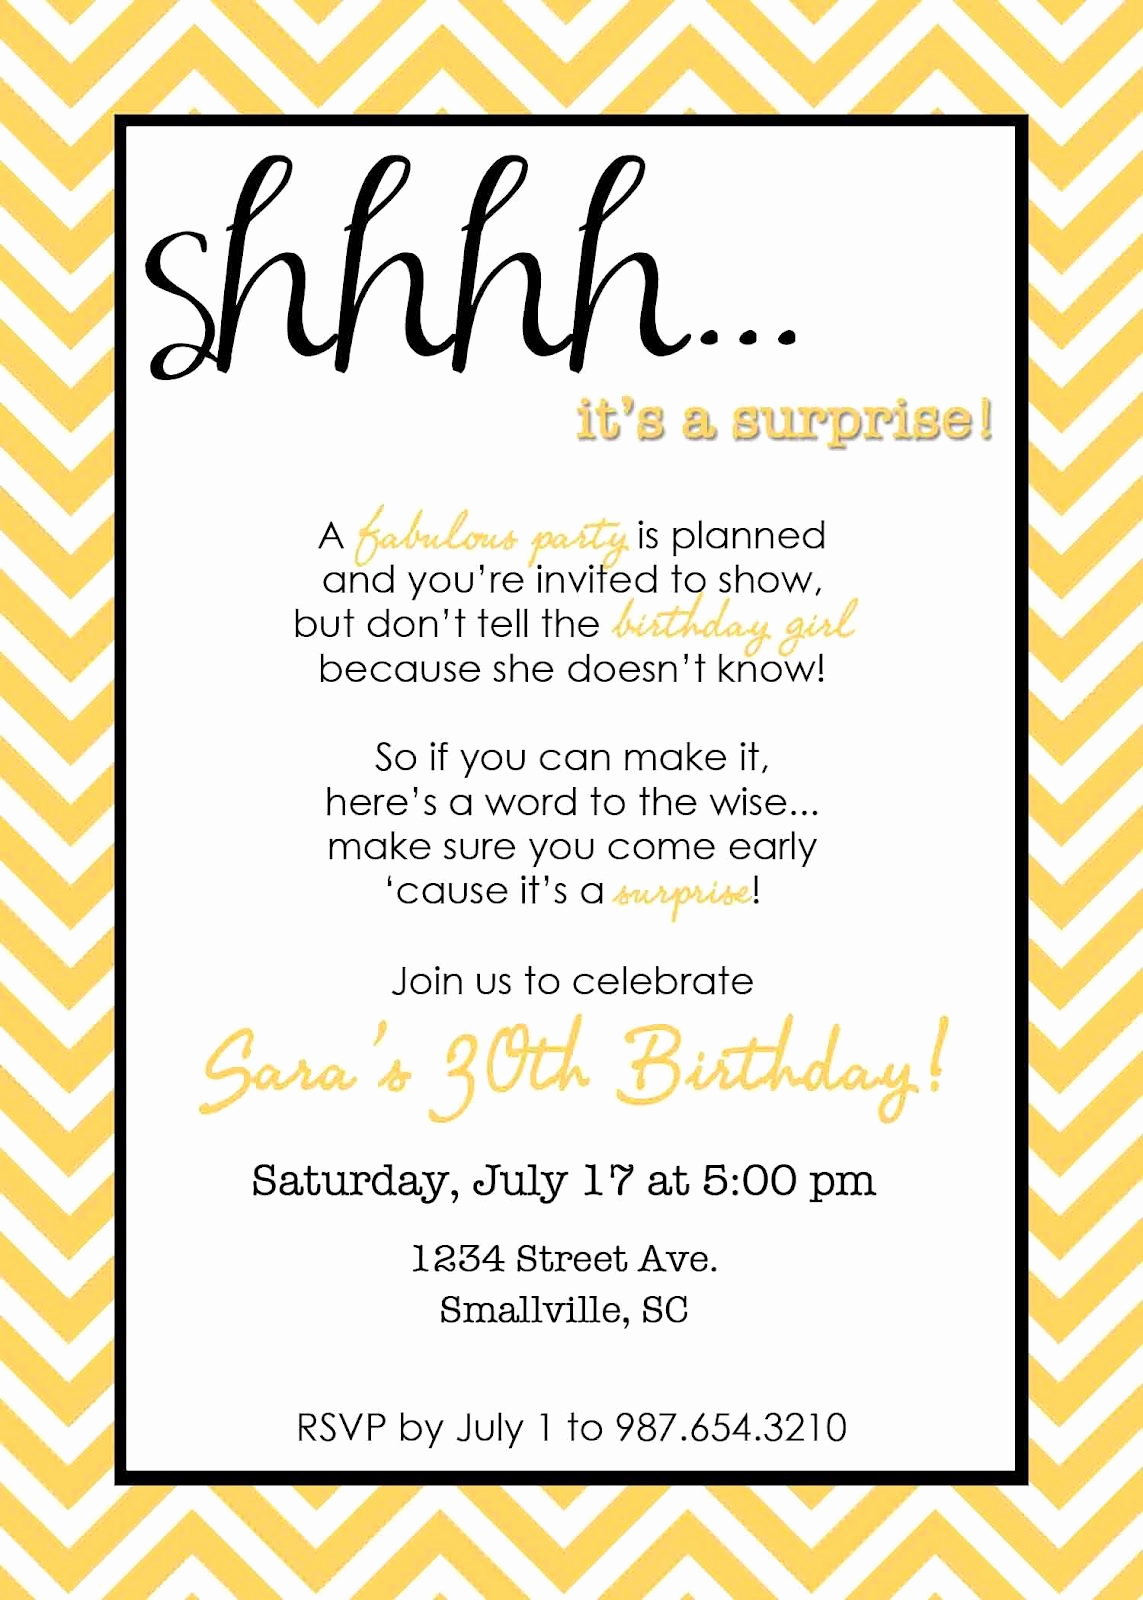 Birthday Party Invitation Templates Beautiful Wording for Surprise Birthday Party